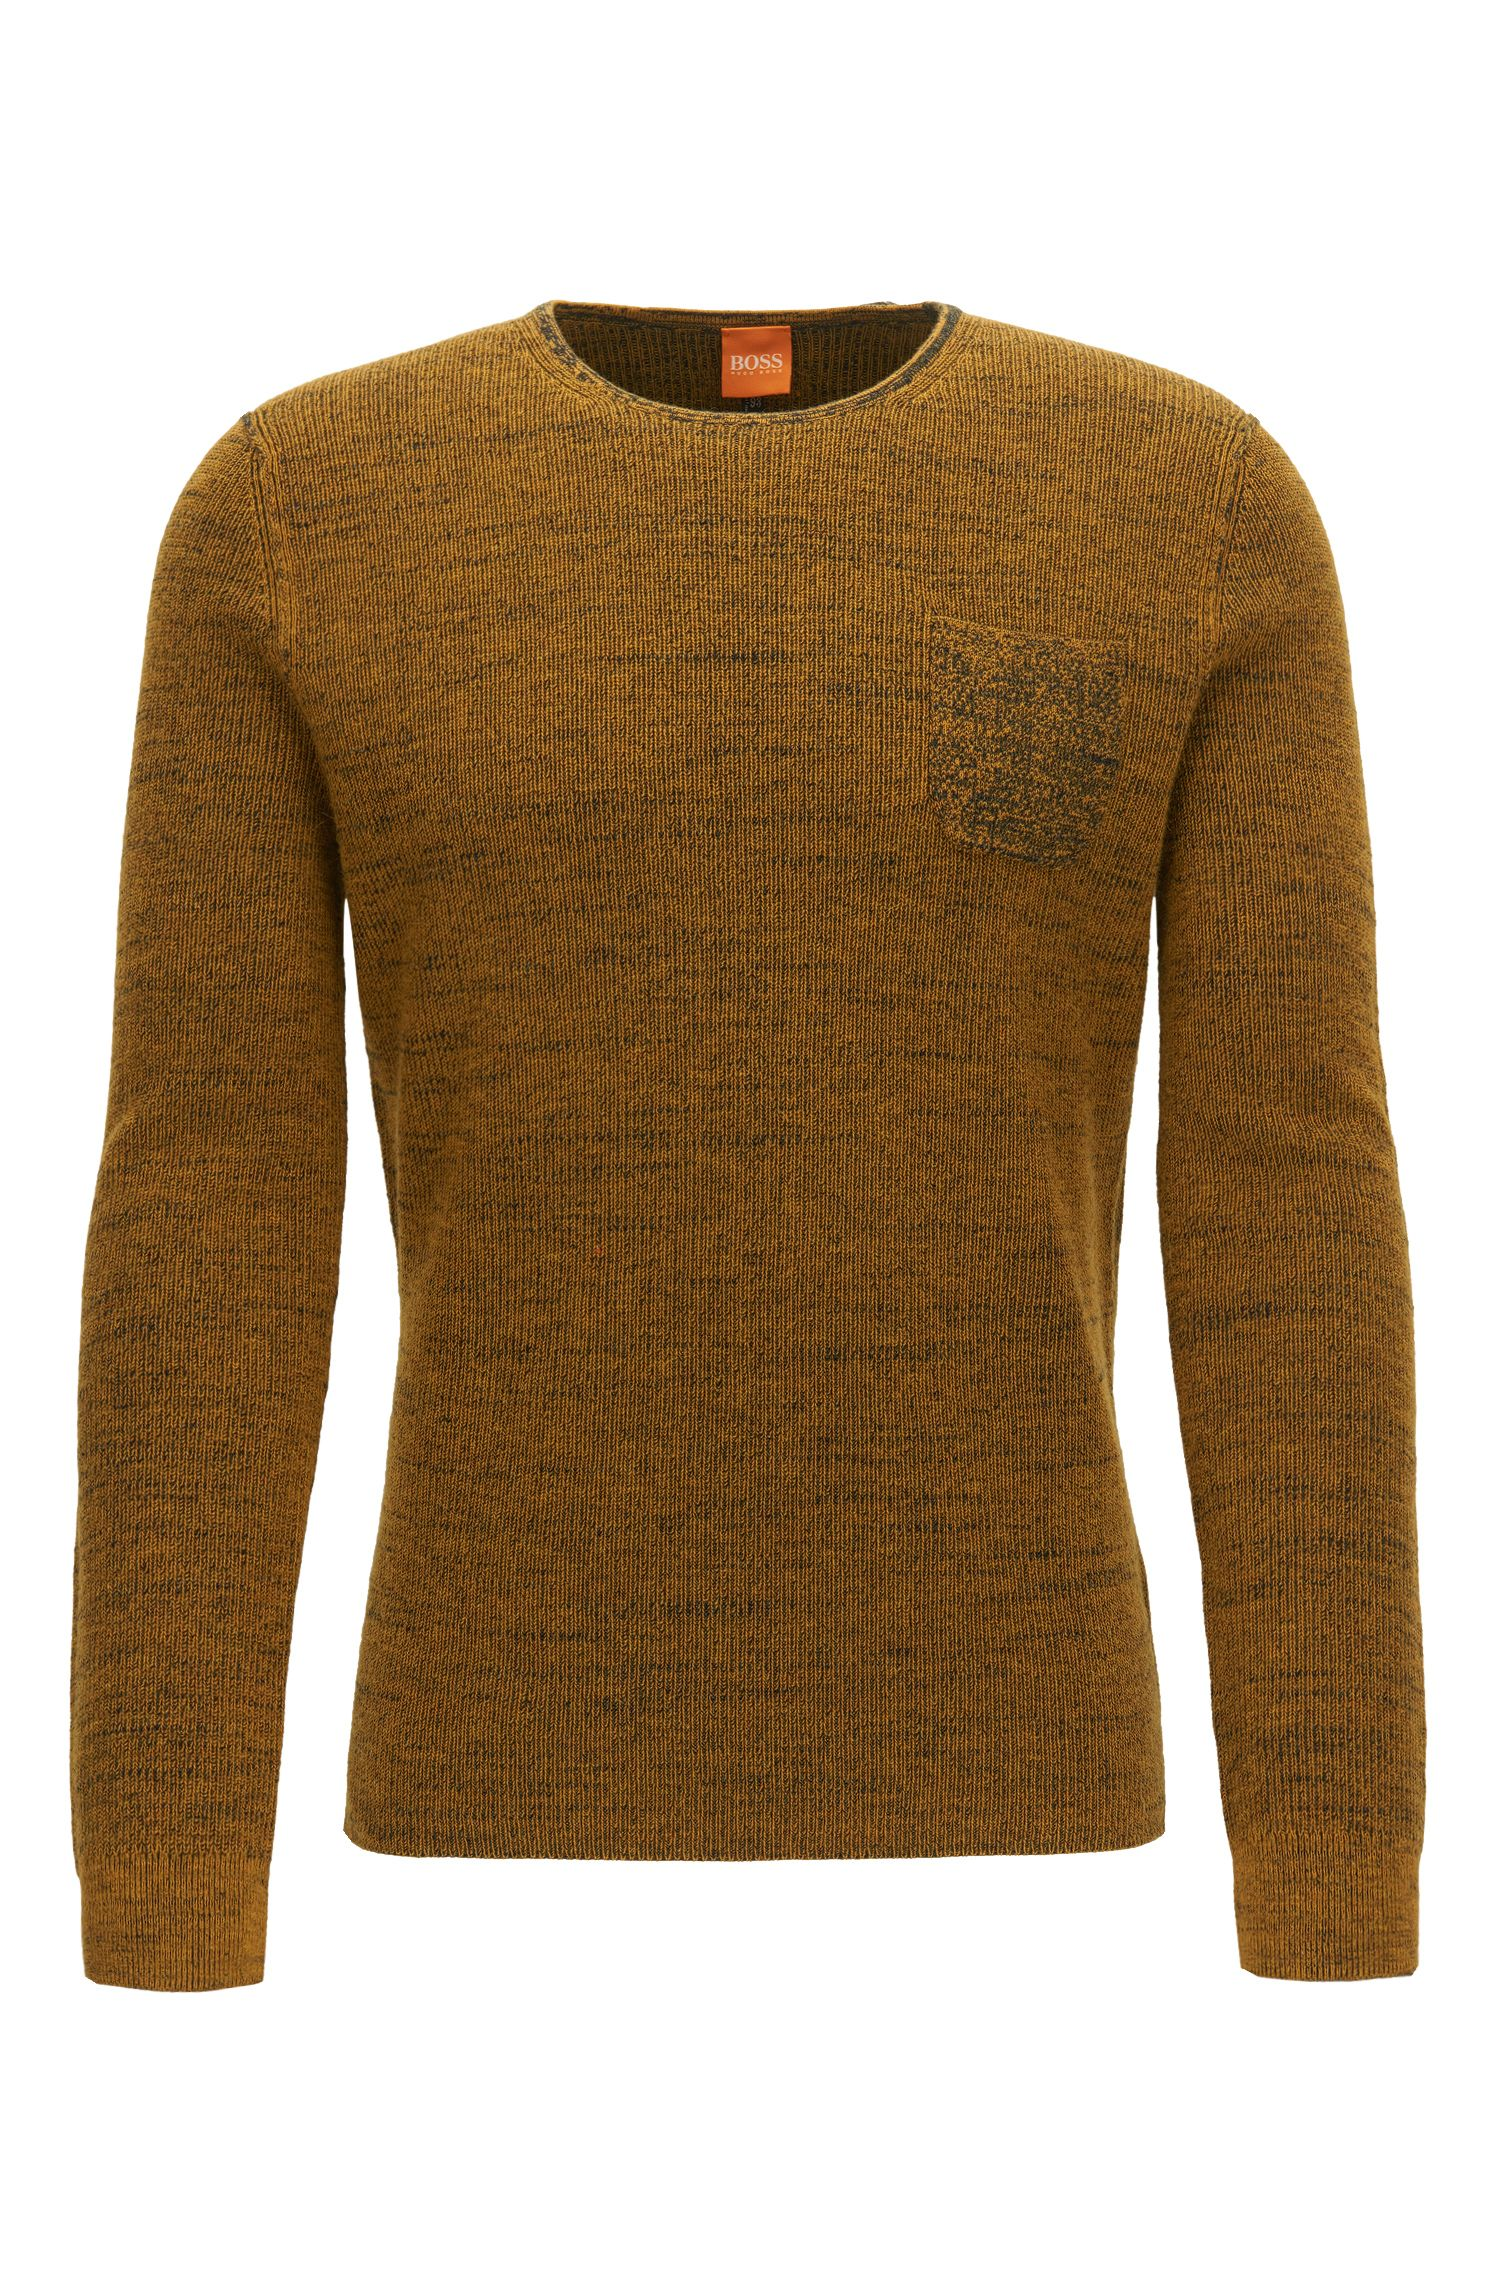 Cotton Blend Sweater | Kutask